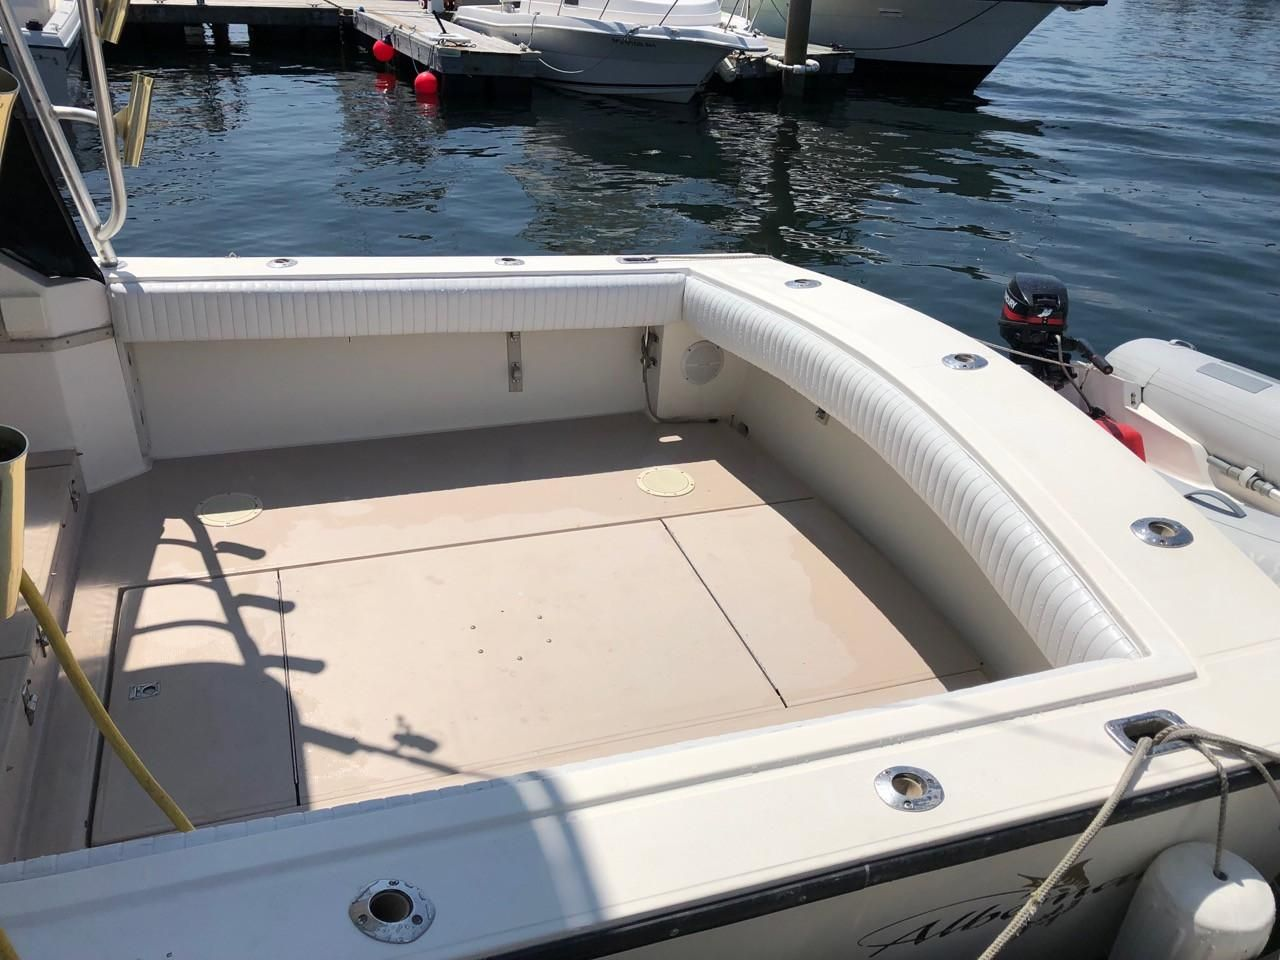 1991 Used Albemarle 27 Express Sports Fishing Boat For Sale